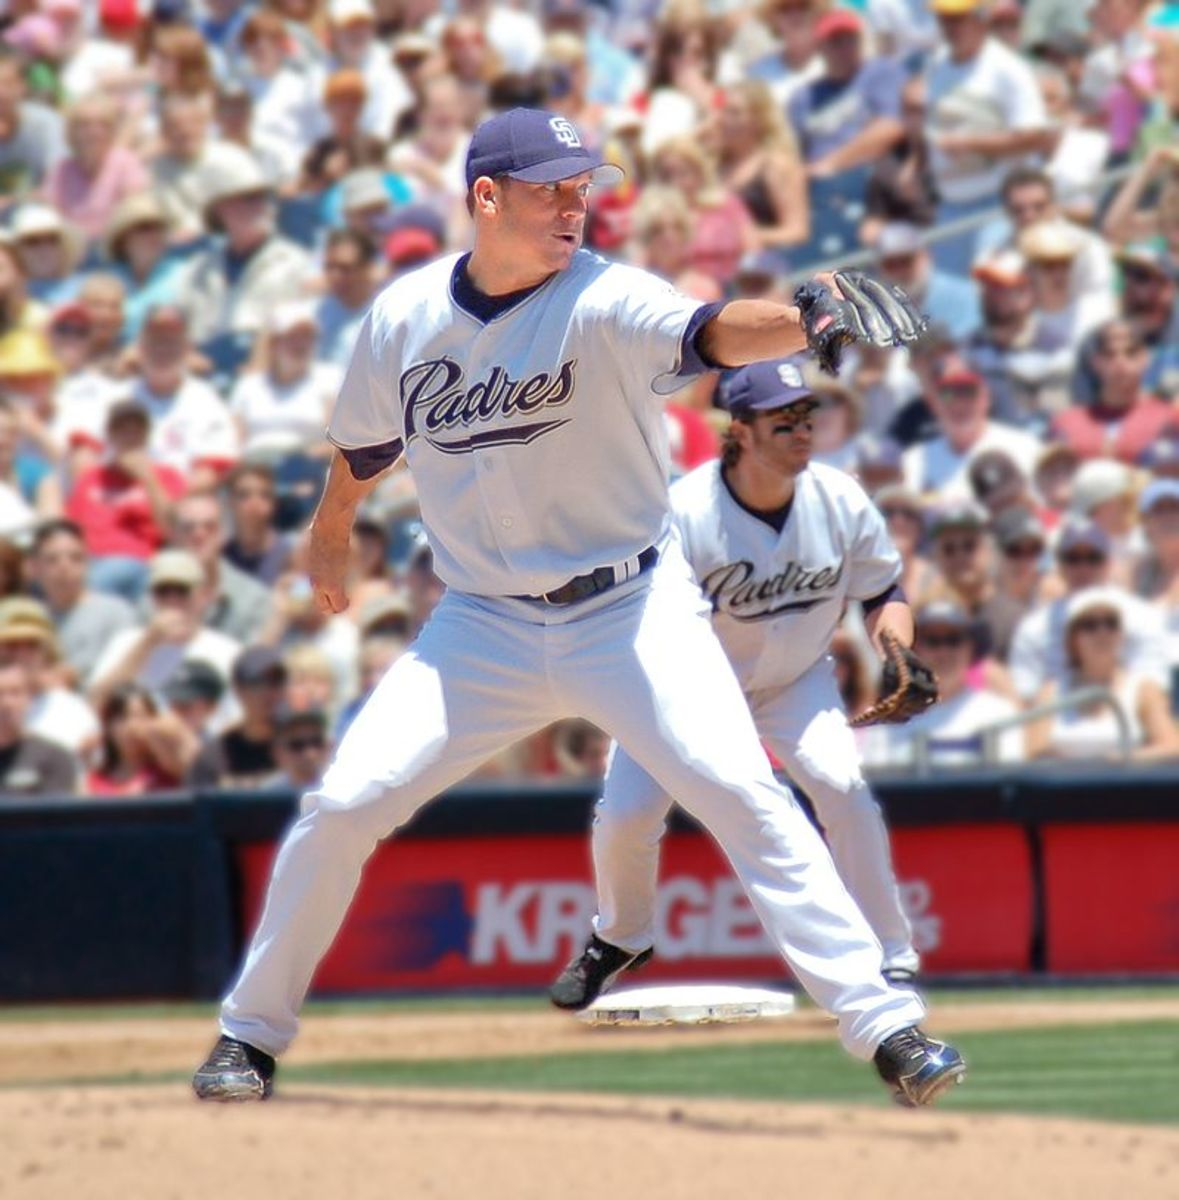 Jake Peavy pitching for the San Diego Padres, May 28, 2006.